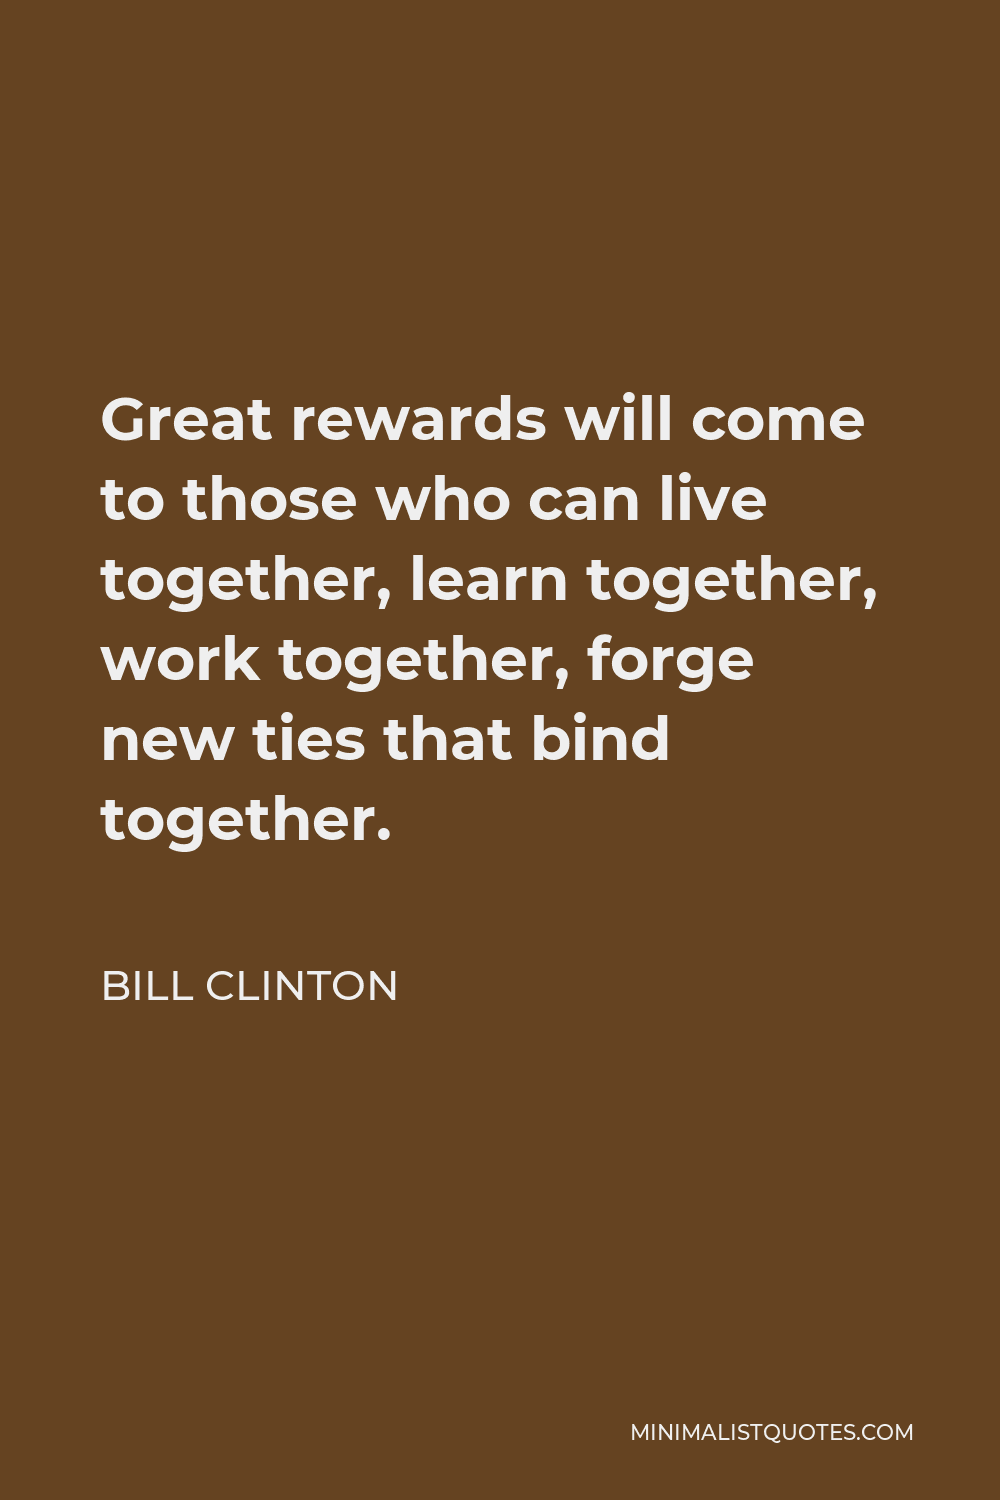 Bill Clinton Quote - Great rewards will come to those who can live together, learn together, work together, forge new ties that bind together.